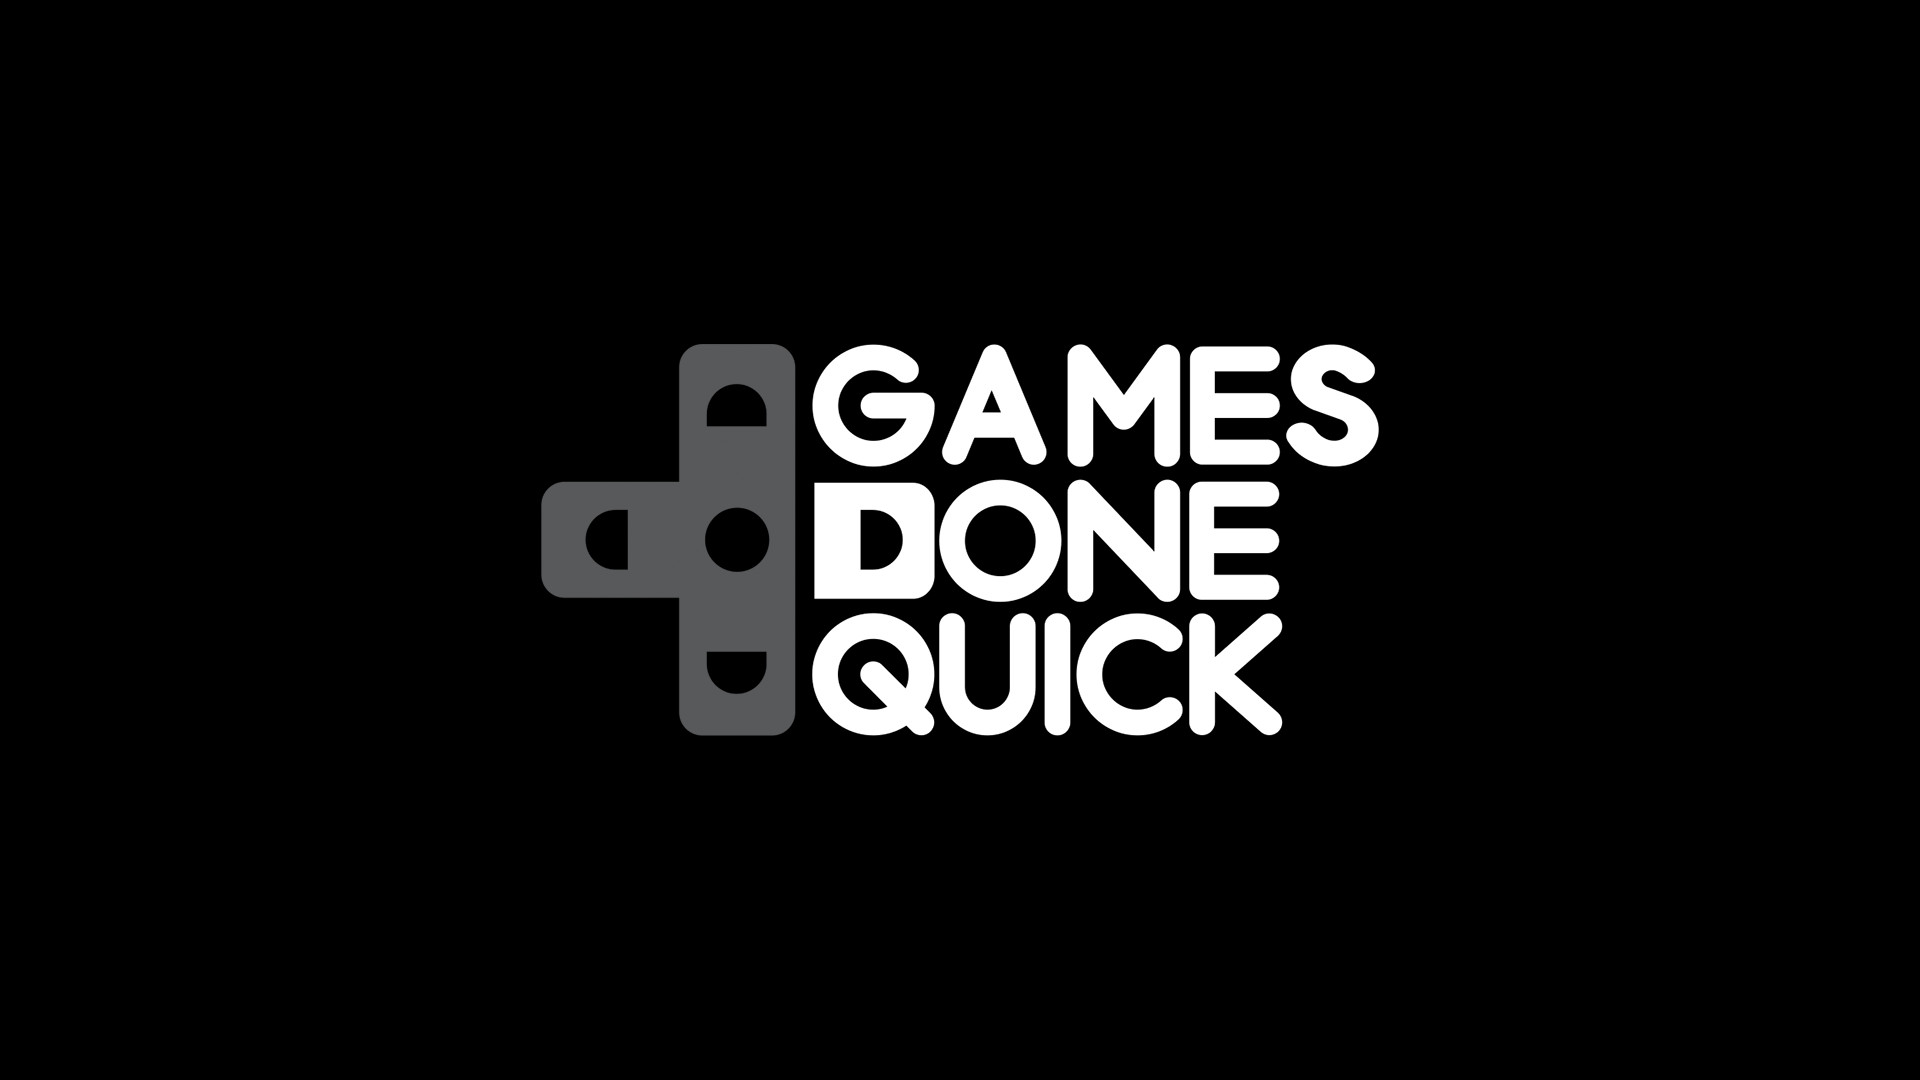 Awesome Games Done Quick sets another annual record for charity